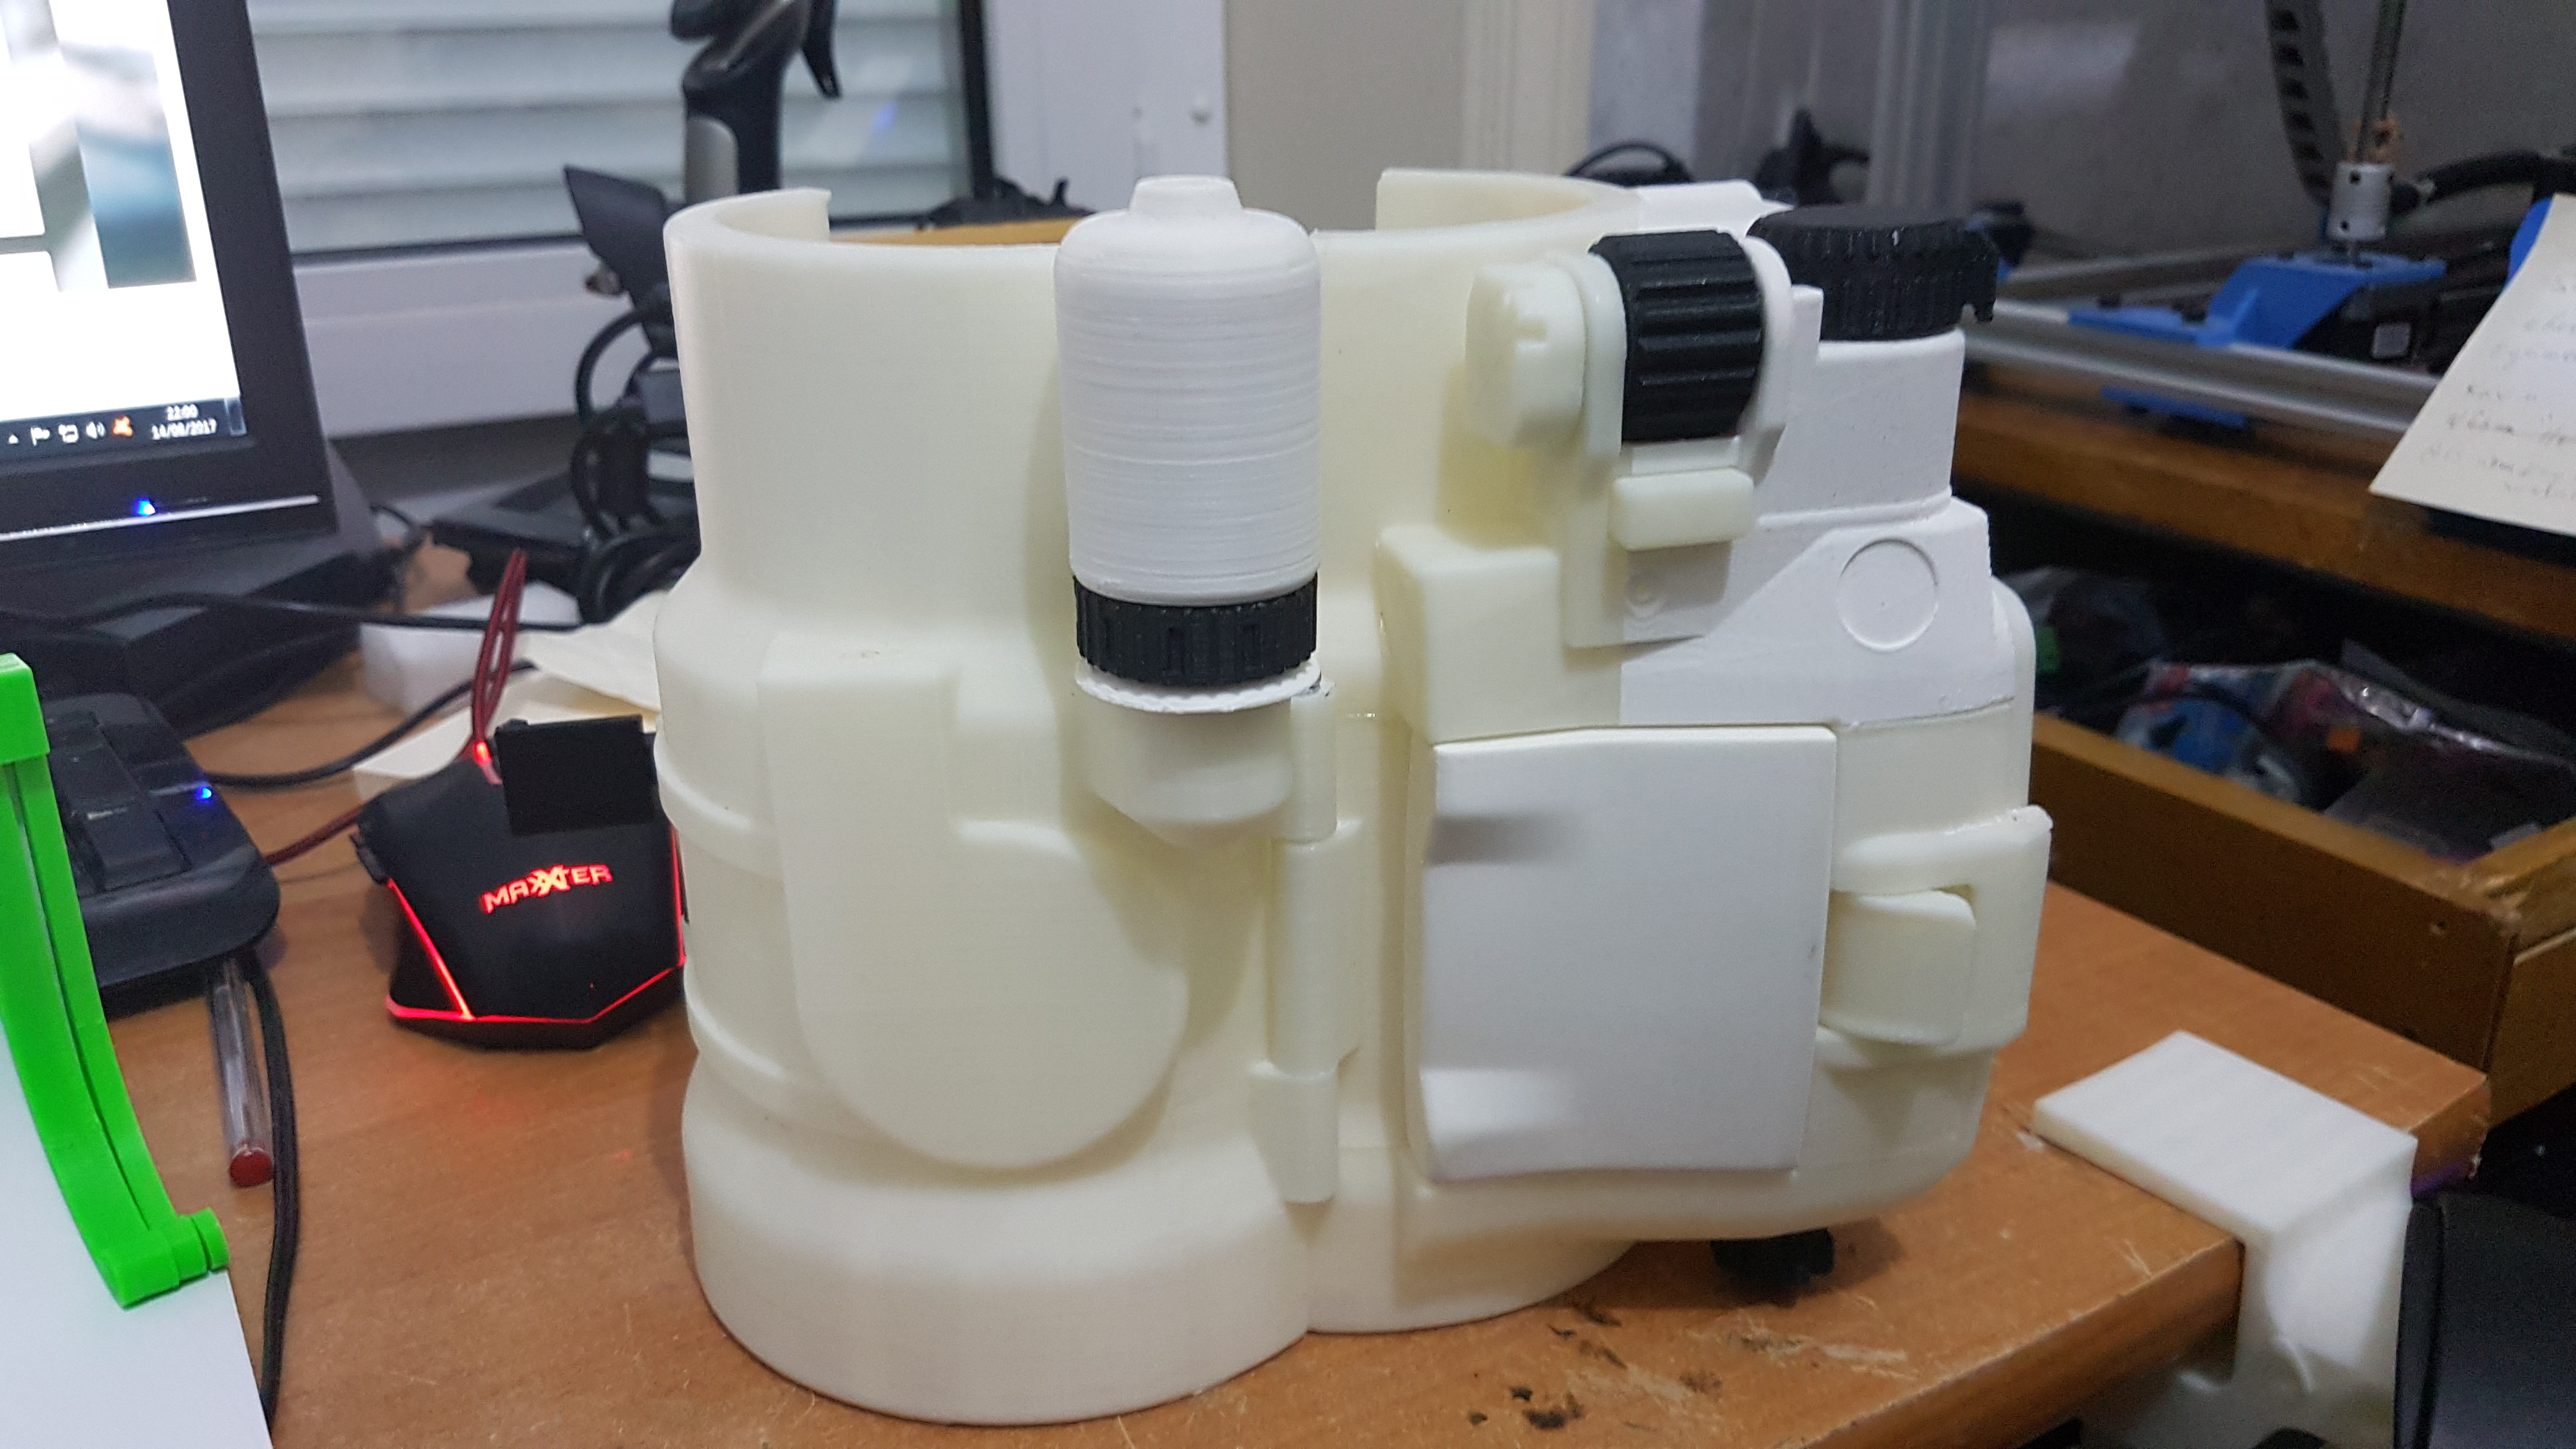 3D Printable Fallout 4 - Pipboy 3000 MkIV by Daniel Lilygreen